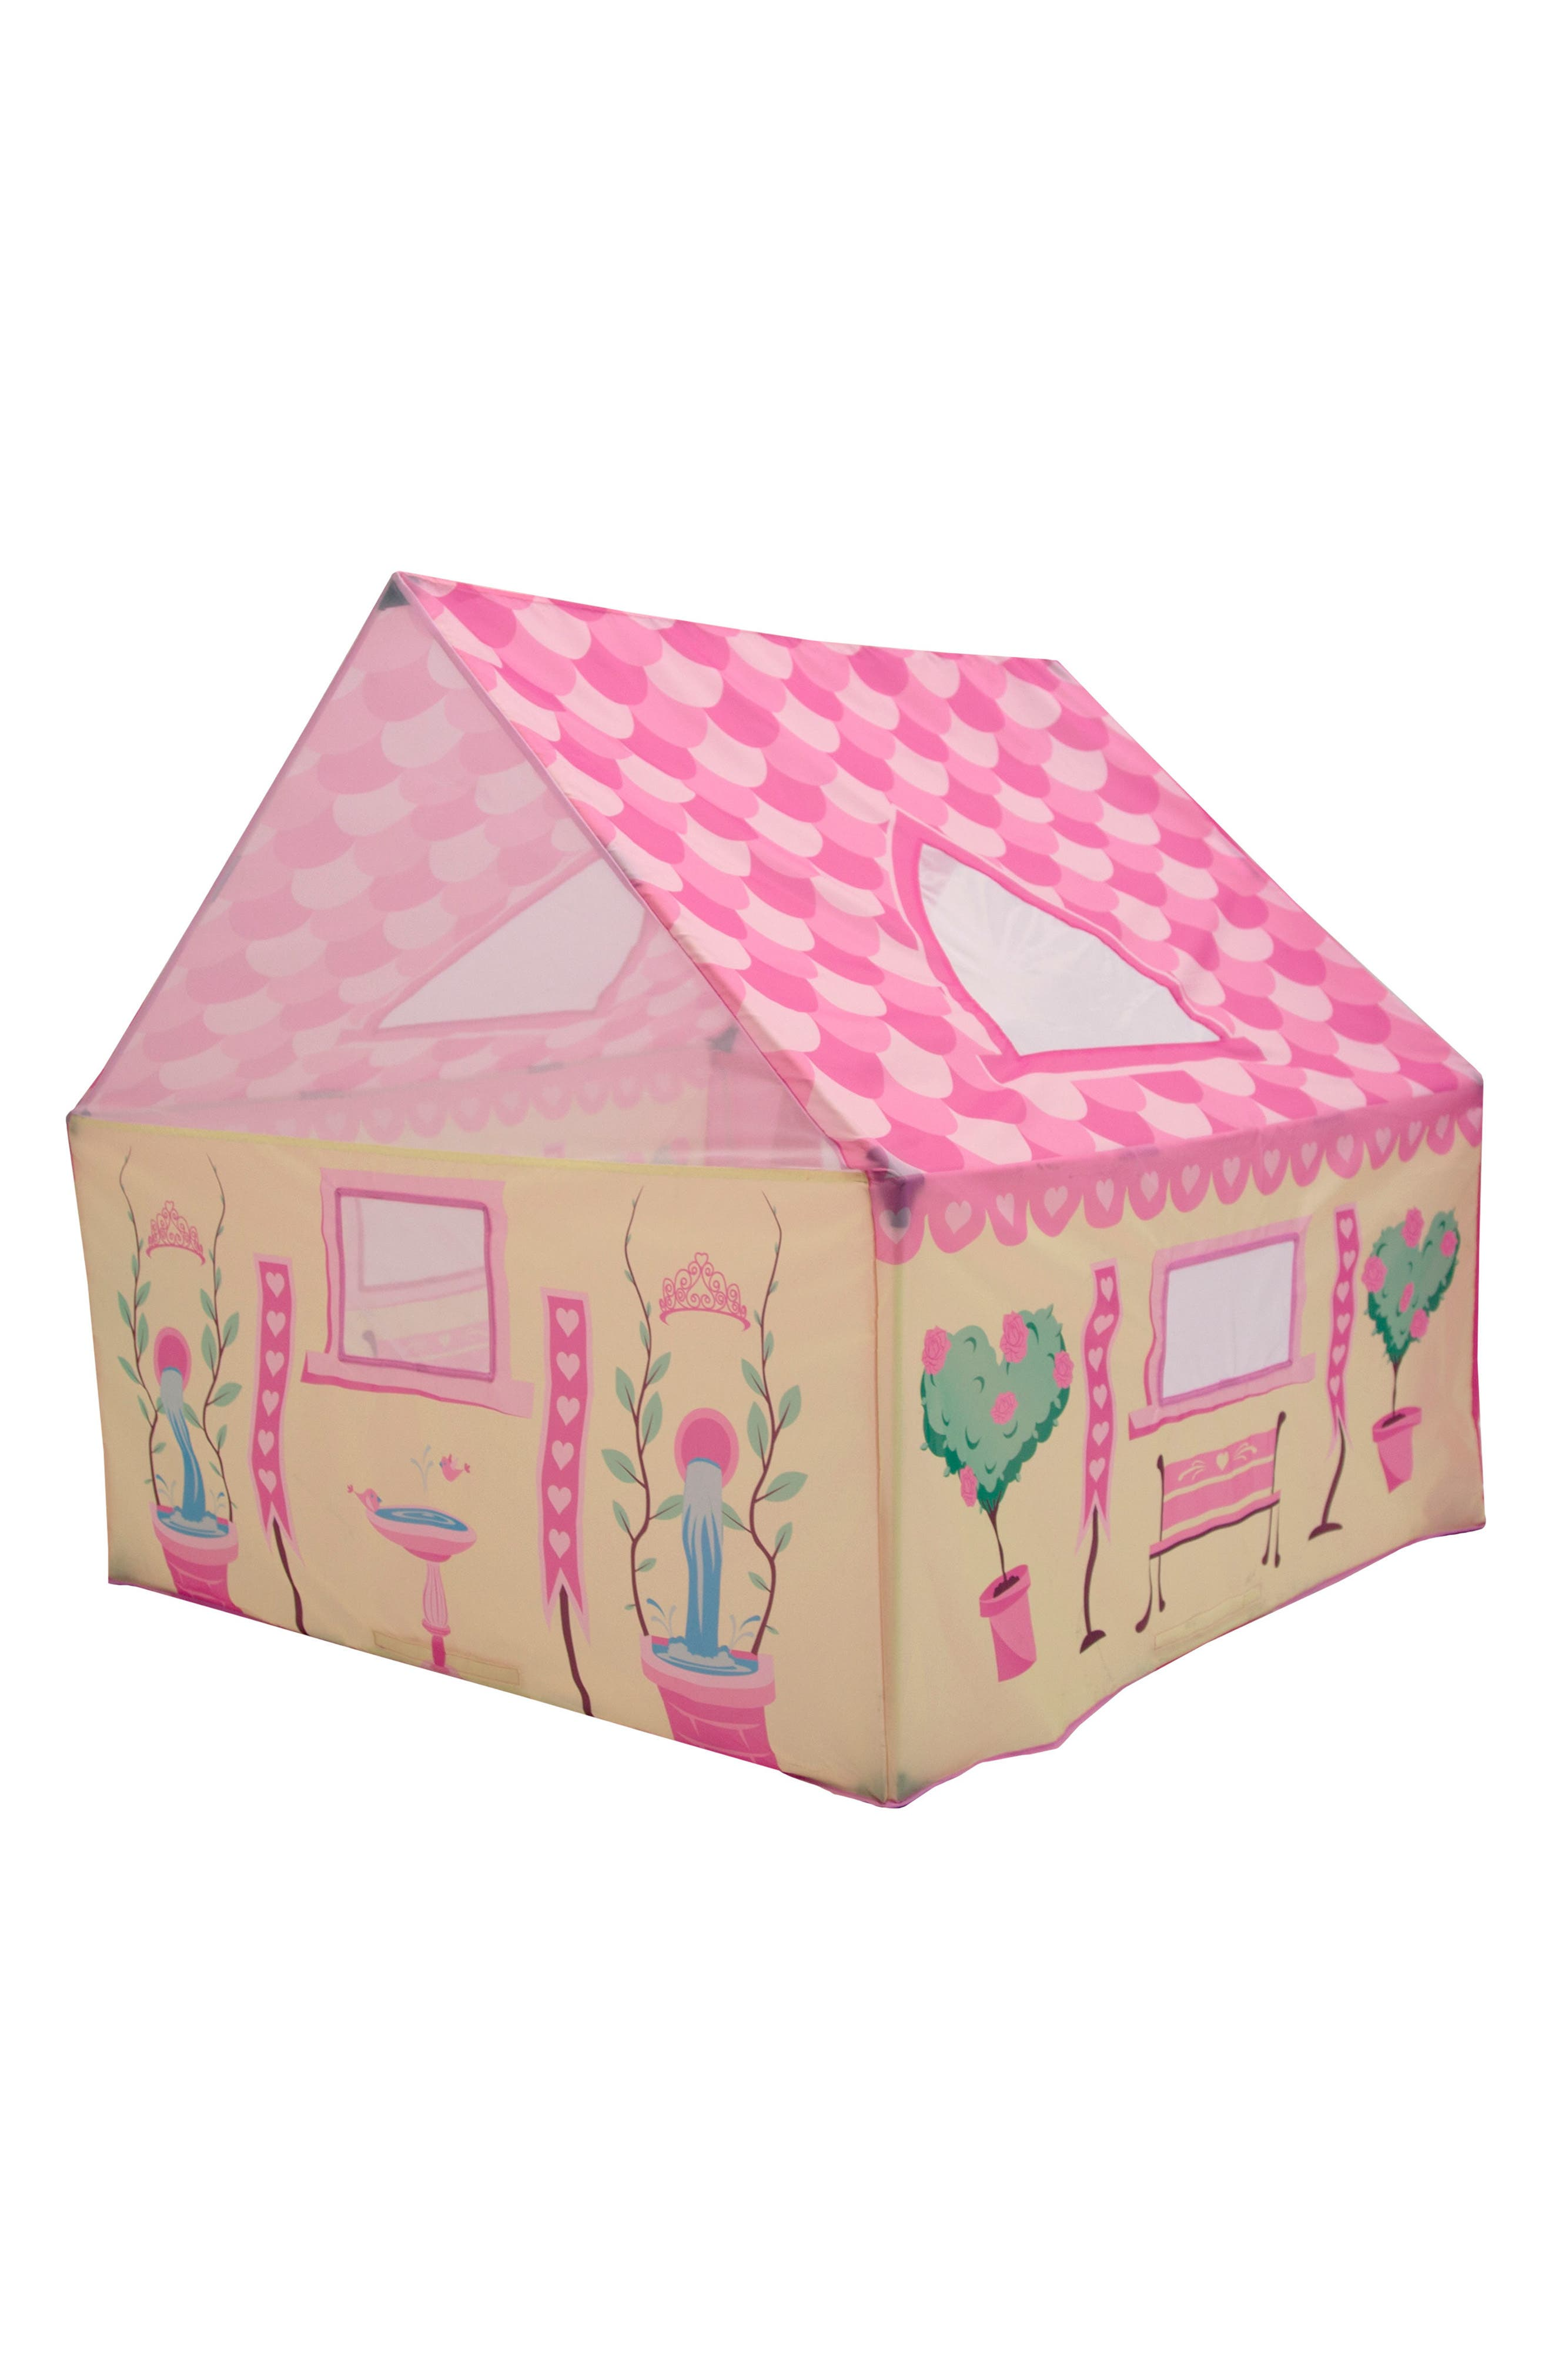 Alternate Image 1 Selected - Pacific Play Tents Tea Party Garden Playhouse Tent